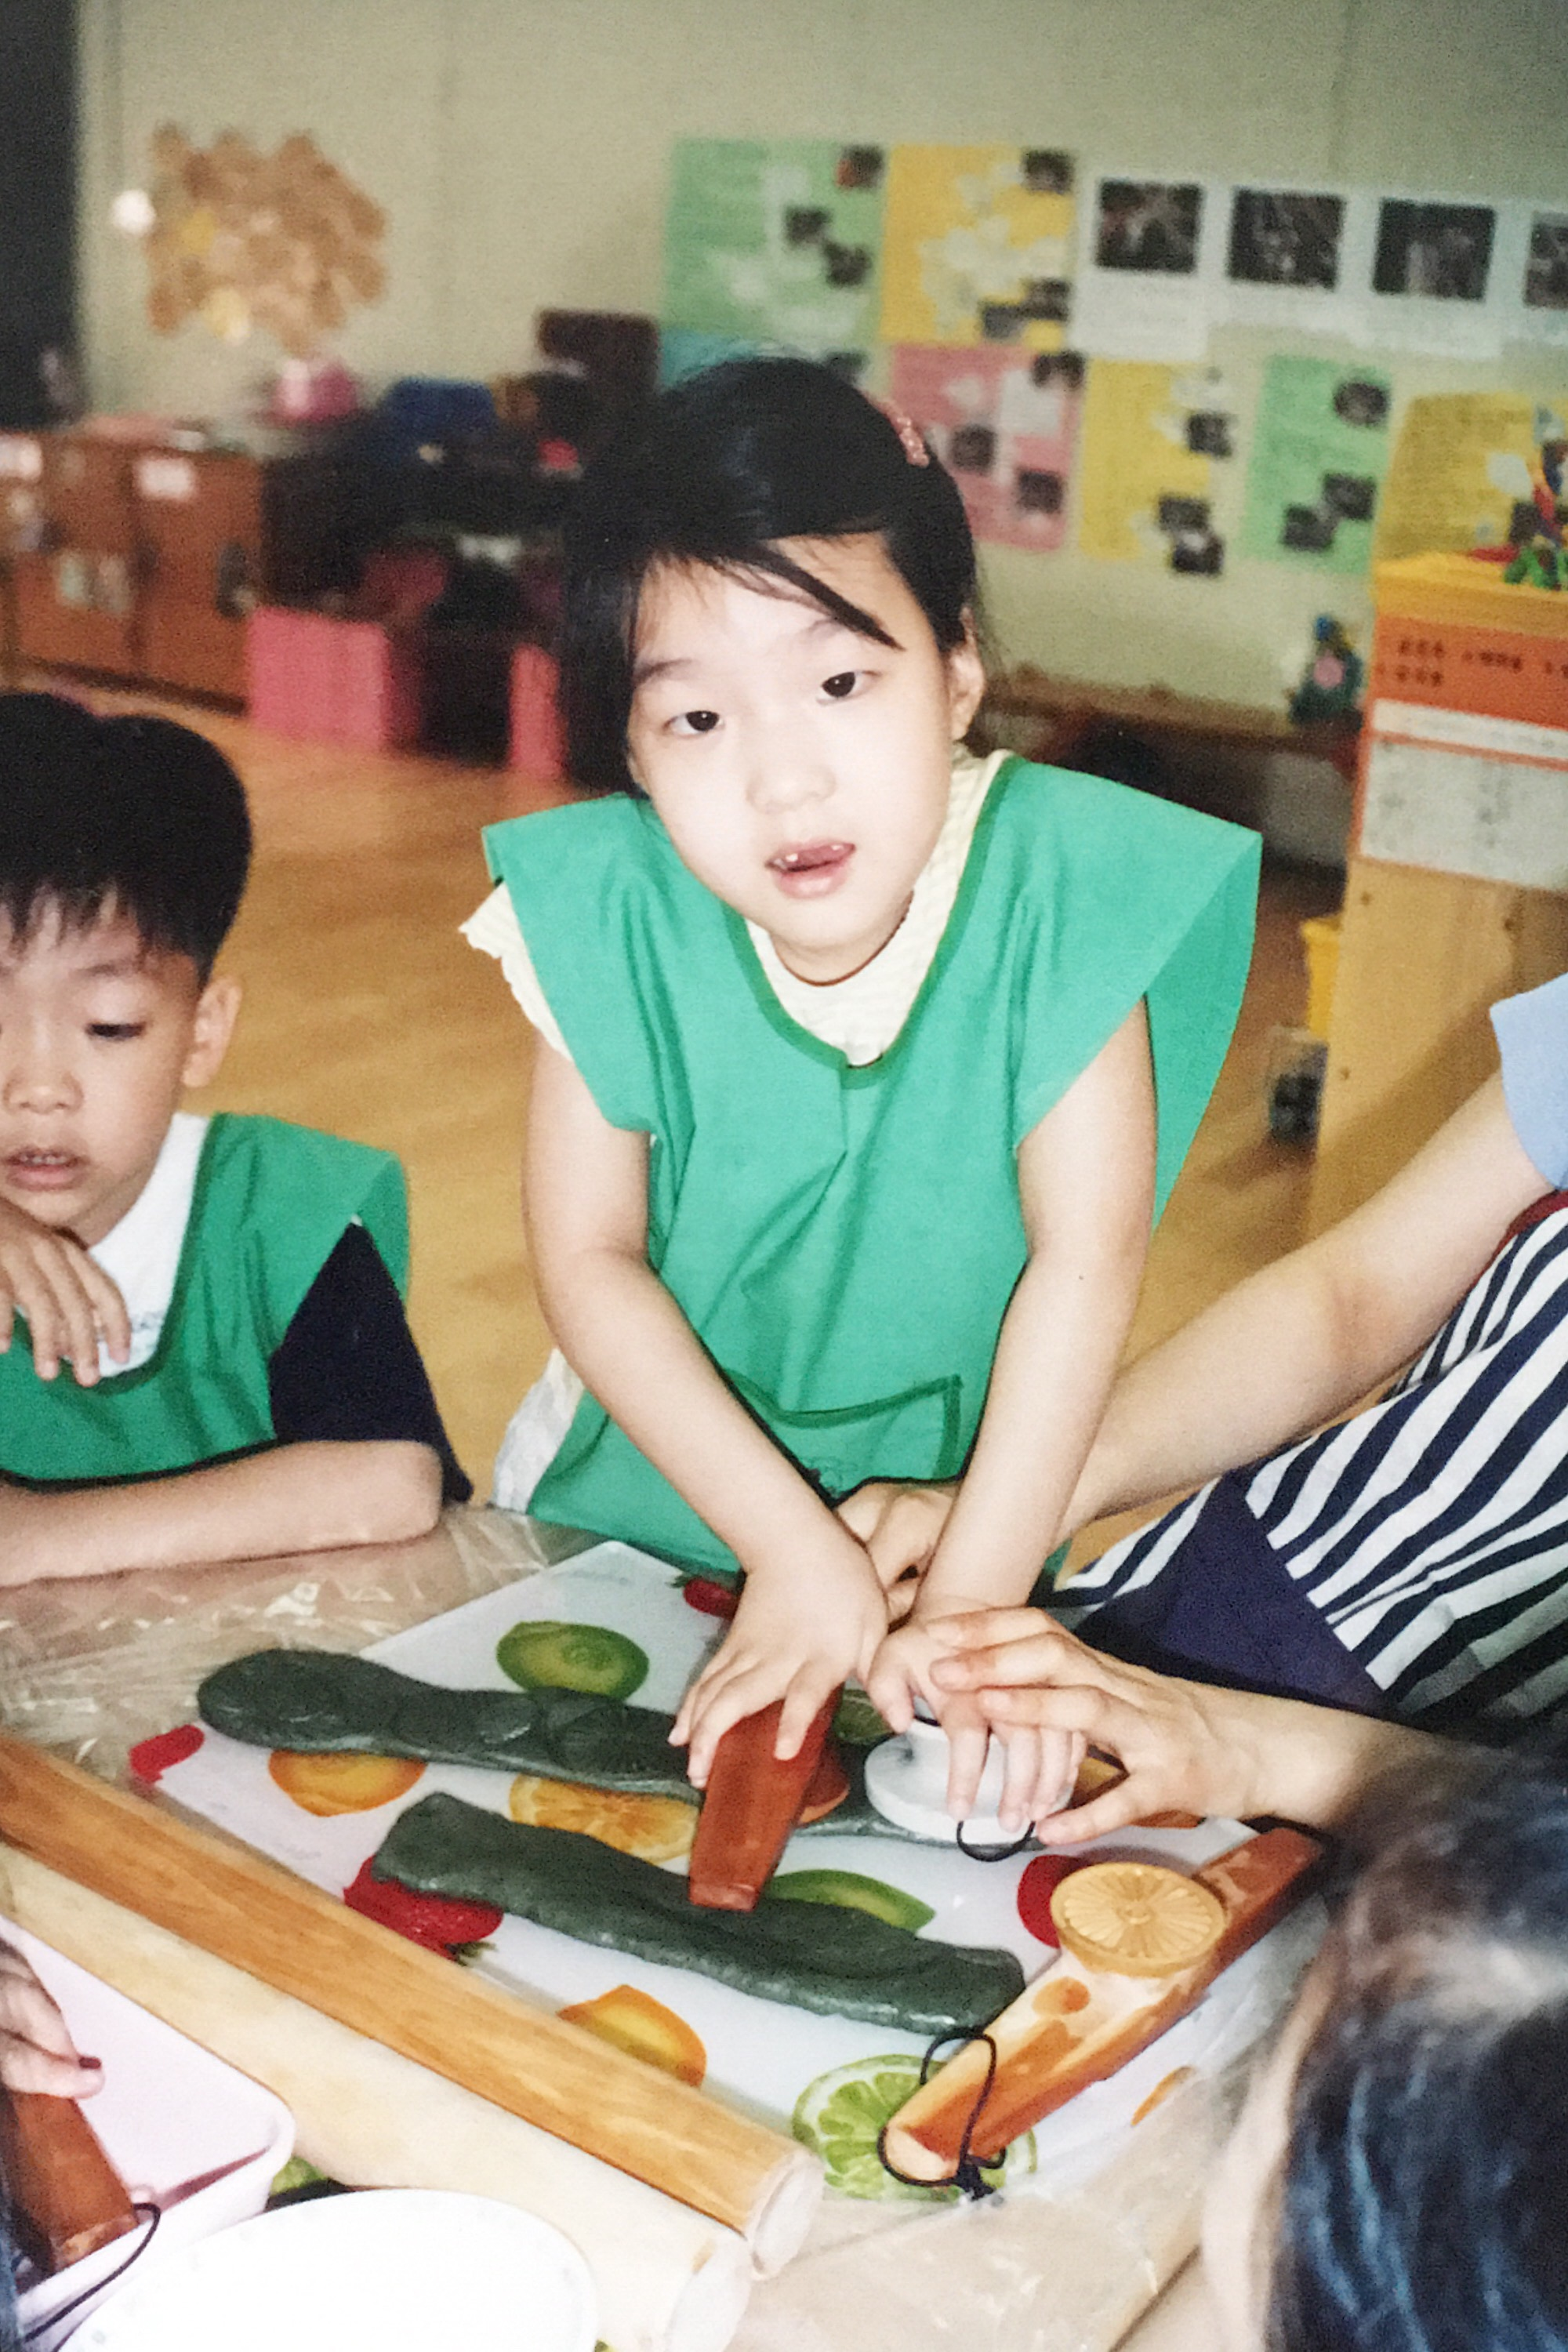 Jiyoung making rice cakes in kindergarten.